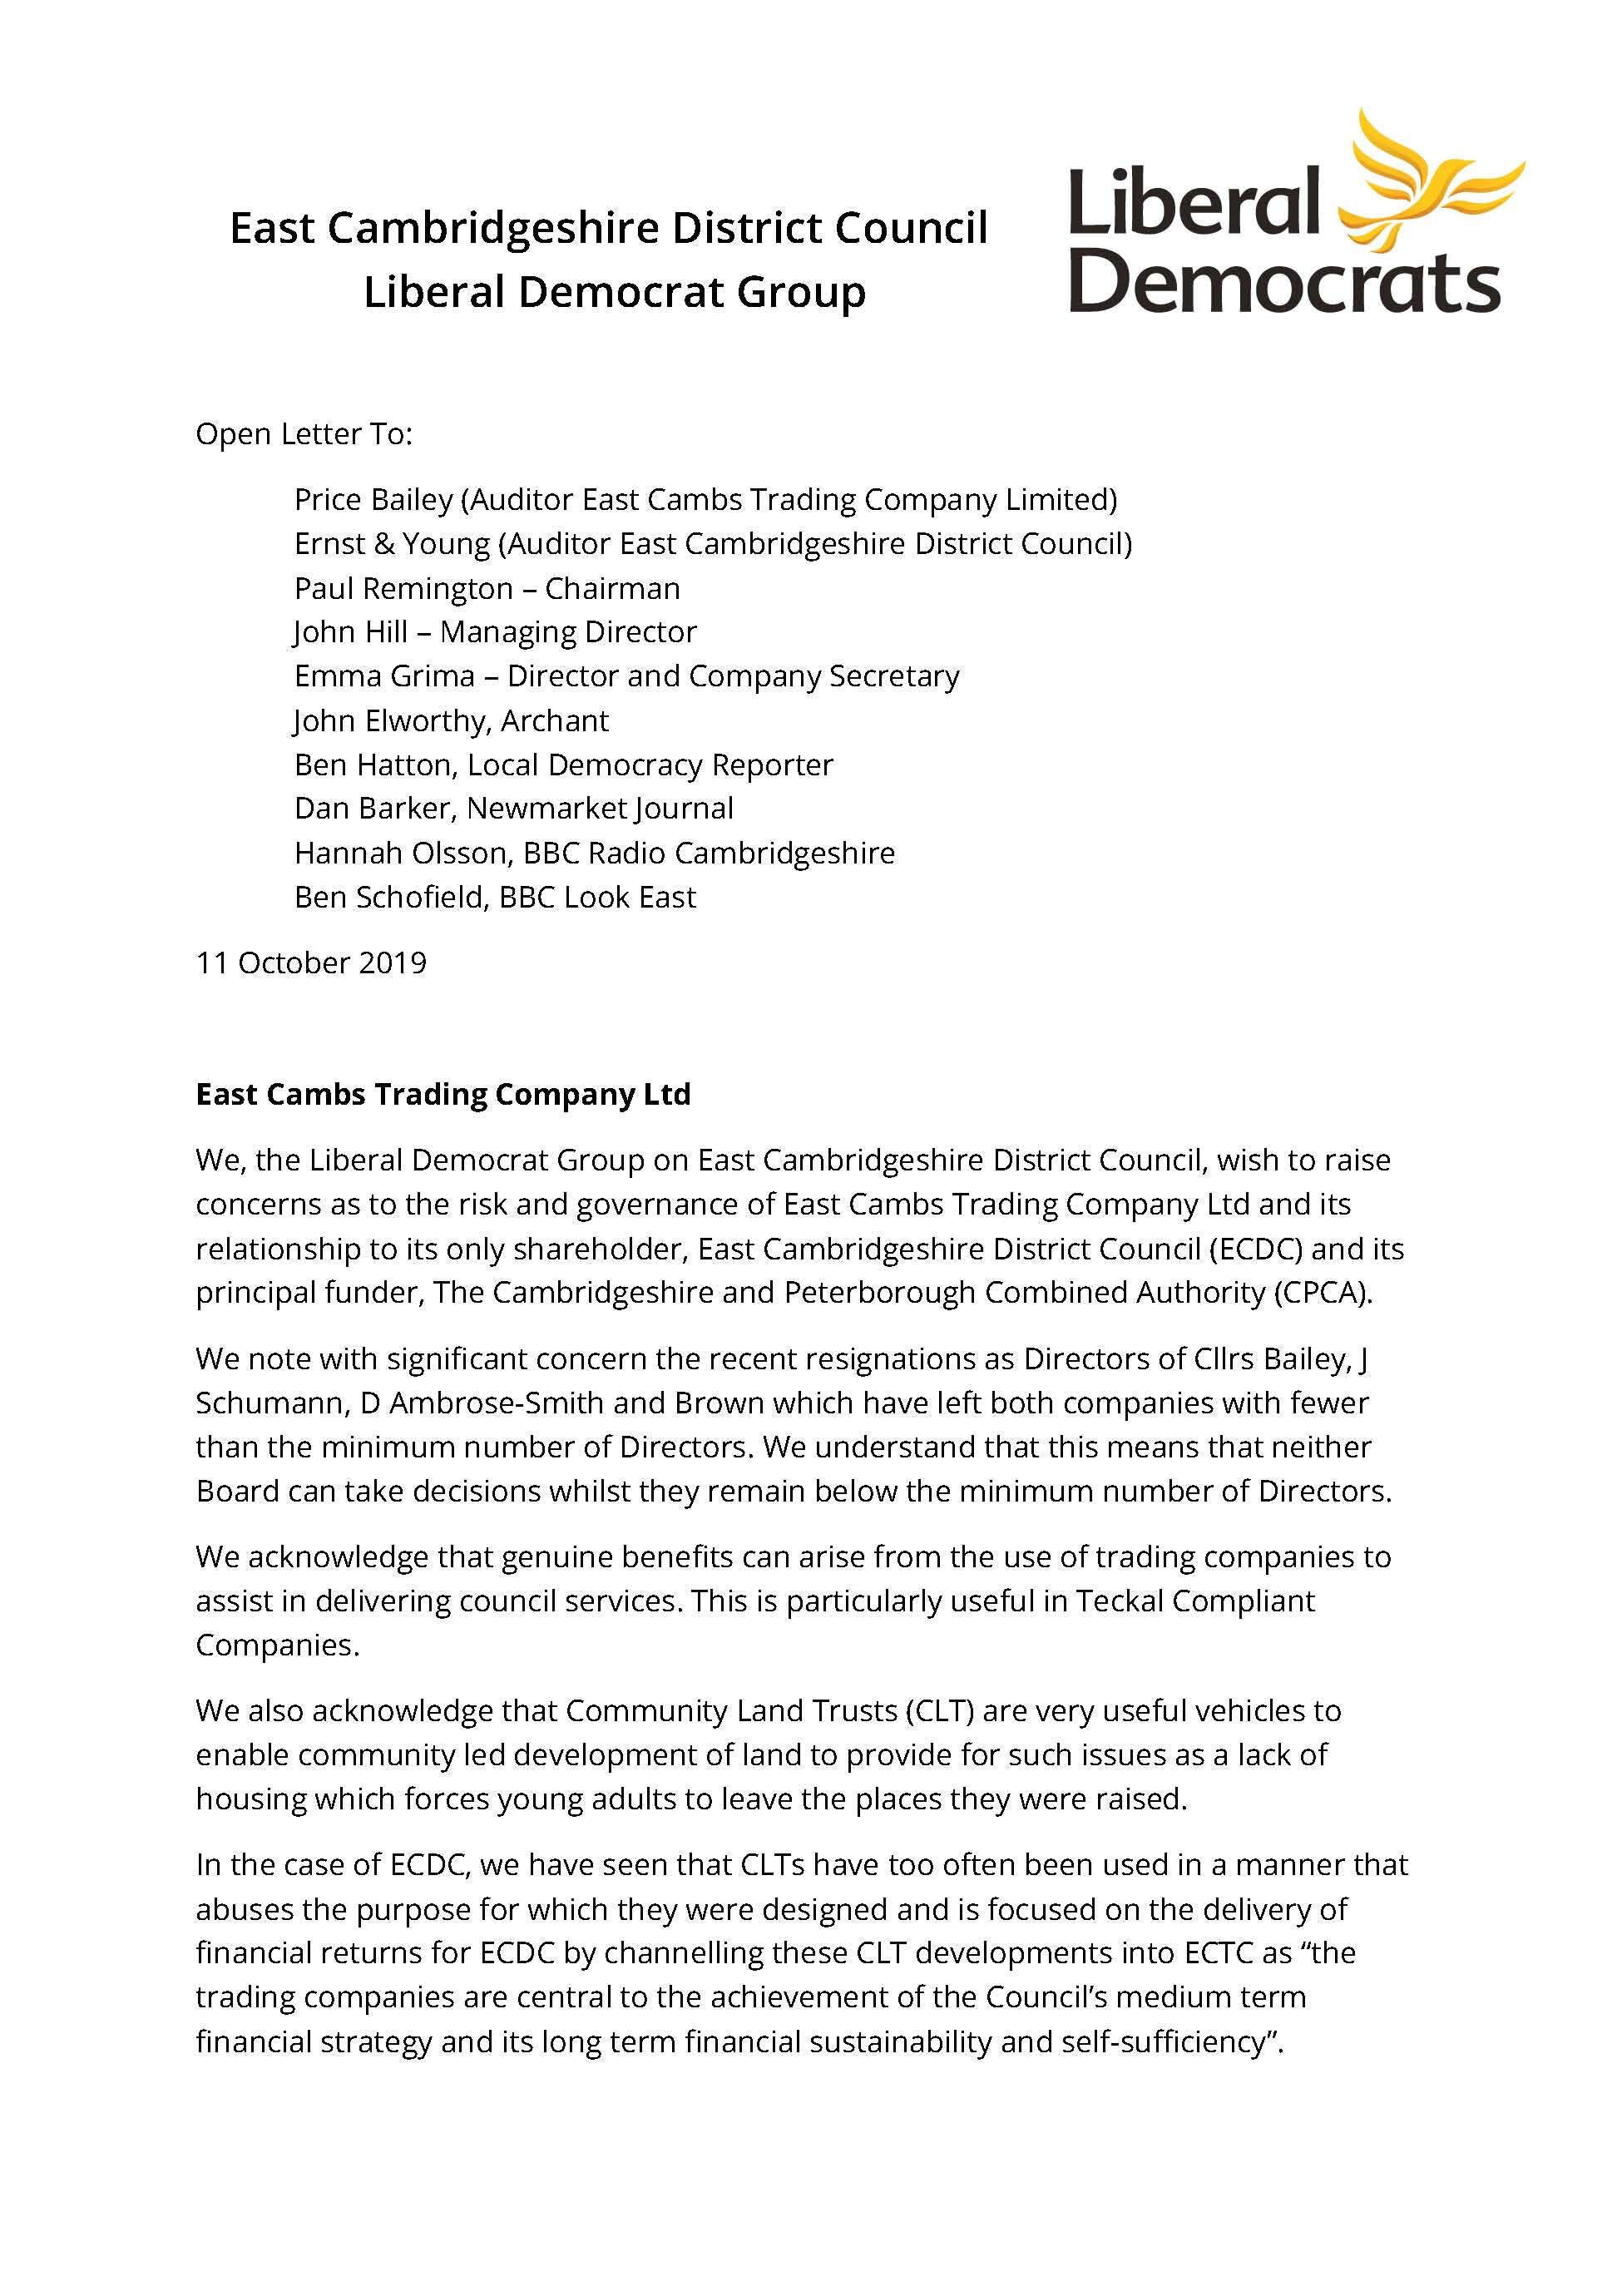 """East Cambridgeshire District Council Liberal Democrat Group Open Letter To: Price Bailey (Auditor East Cambs Trading Company Limited) Ernst & Young (Auditor East Cambridgeshire District Council) Paul Remington – Chairman John Hill – Managing Director Emma Grima – Director and Company Secretary John Elworthy, Archant Ben Hatton, Local Democracy Reporter Dan Barker, Newmarket Journal Hannah Olsson, BBC Radio Cambridgeshire Ben Schofield, BBC Look East 11 October 2019 East Cambs Trading Company Ltd We, the Liberal Democrat Group on East Cambridgeshire District Council, wish to raise concerns as to the risk and governance of East Cambs Trading Company Ltd and its relationship to its only shareholder, East Cambridgeshire District Council (ECDC) and its principal funder, The Cambridgeshire and Peterborough Combined Authority (CPCA). We note with significant concern the recent resignations as Directors of Cllrs Bailey, J Schumann, D Ambrose-Smith and Brown which have left both companies with fewer than the minimum number of Directors. We understand that this means that neither Board can take decisions whilst they remain below the minimum number of Directors. We acknowledge that genuine benefits can arise from the use of trading companies to assist in delivering council services. This is particularly useful in Teckal Compliant Companies. We also acknowledge that Community Land Trusts (CLT) are very useful vehicles to enable community led development of land to provide for such issues as a lack of housing which forces young adults to leave the places they were raised. In the case of ECDC, we have seen that CLTs have too often been used in a manner that abuses the purpose for which they were designed and is focused on the delivery of financial returns for ECDC by channelling these CLT developments into ECTC as """"the trading companies are central to the achievement of the Council's medium term financial strategy and its long term financial sustainability and self-sufficiency""""."""